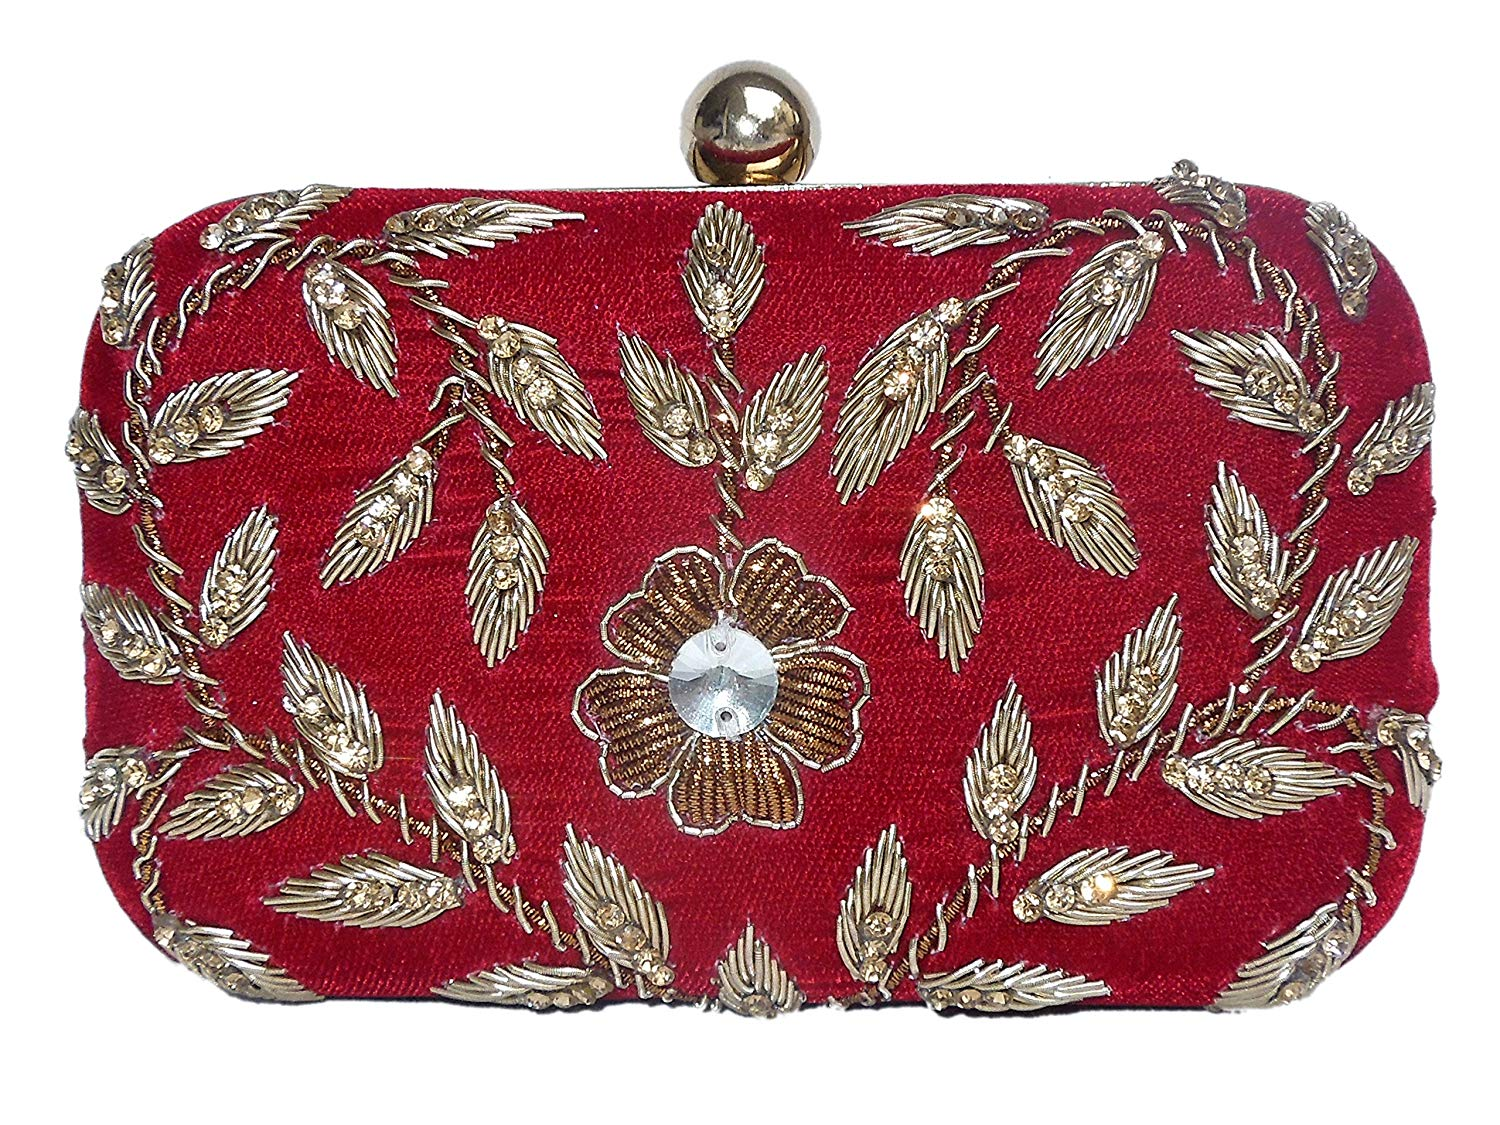 4c6c28a1d1c Get Quotations · Spice Art Maroon Zardozi Embroidered Designer Box Clutch  for Ladies